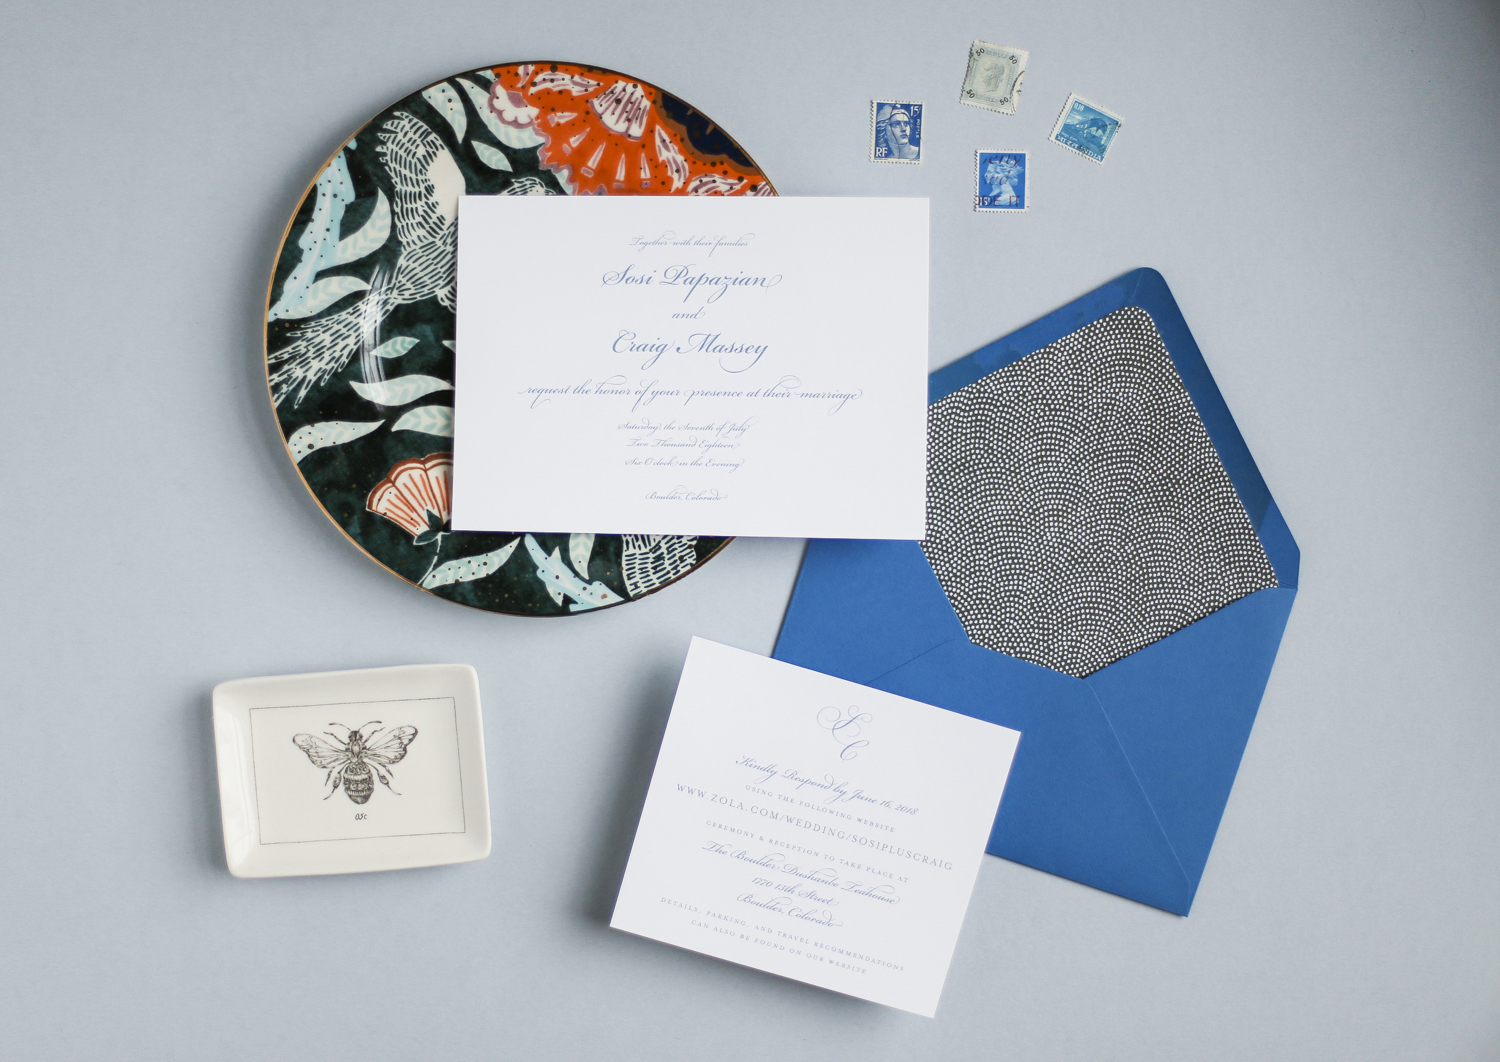 Sosi-Craig-wedding-invite.jpg